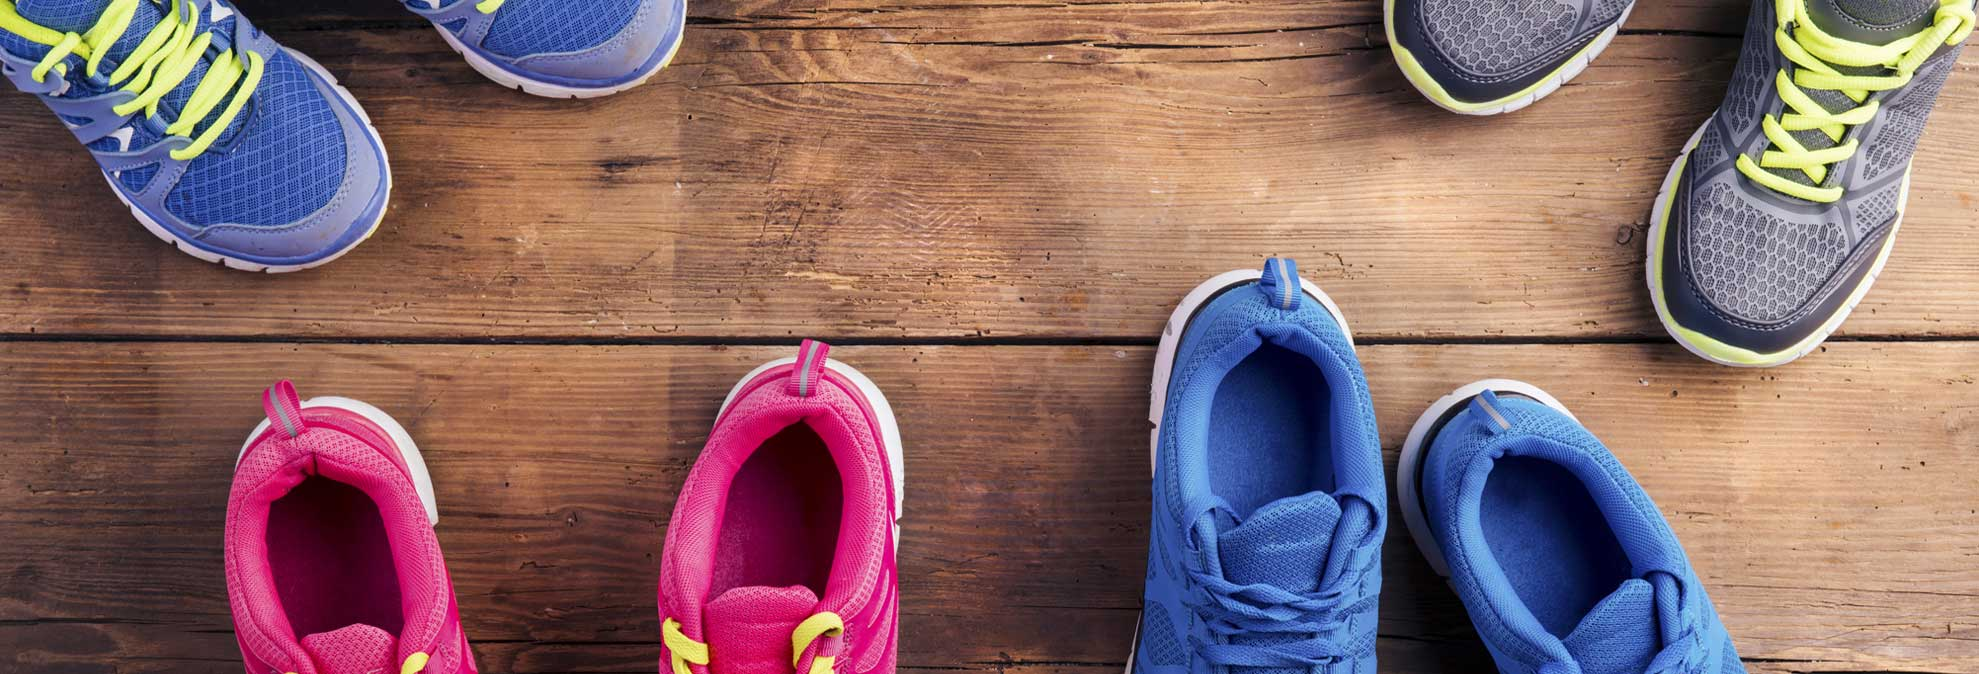 Best Athletic Shoe Buying Guide Consumer Reports